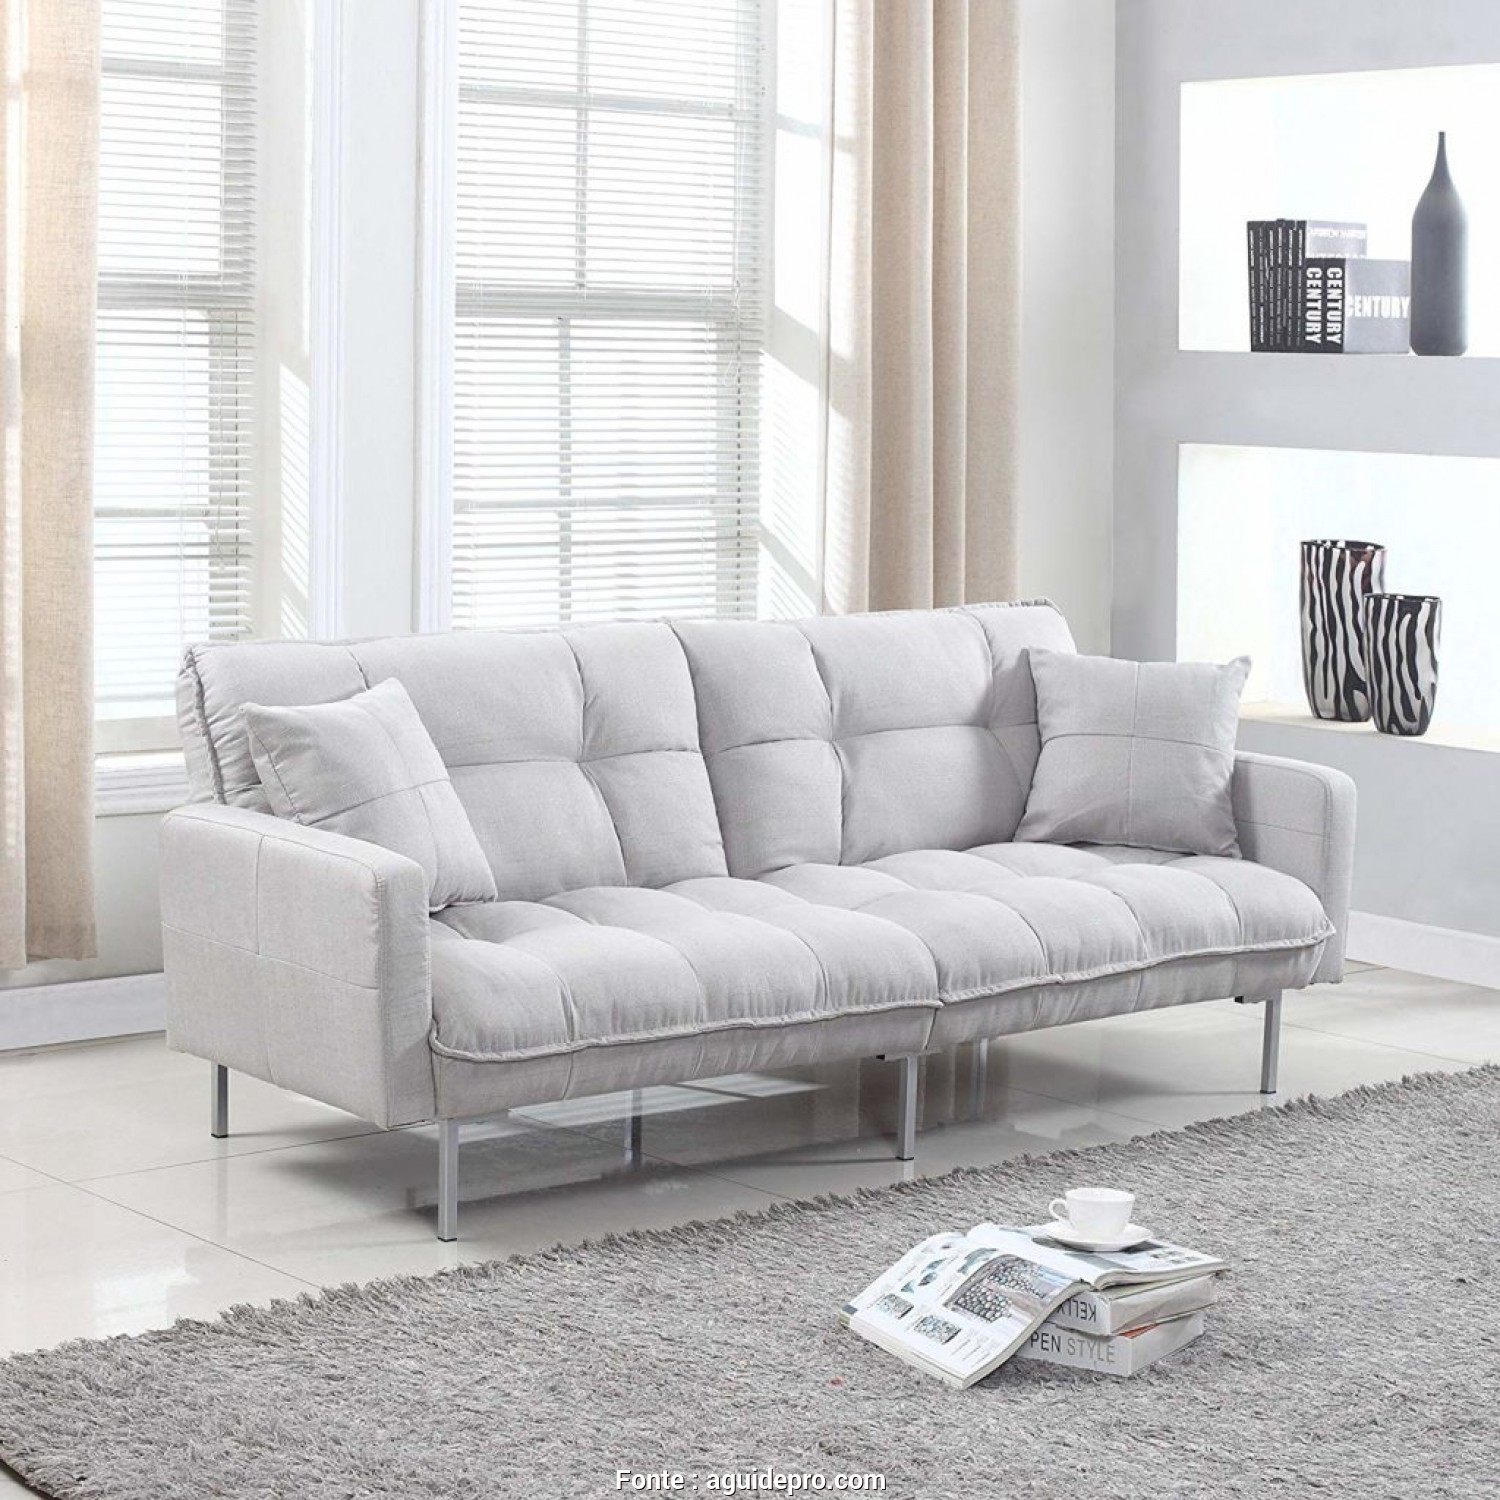 Divano On Futon, Ideale 10 Best Futon Beds, 2019 Buying Guide